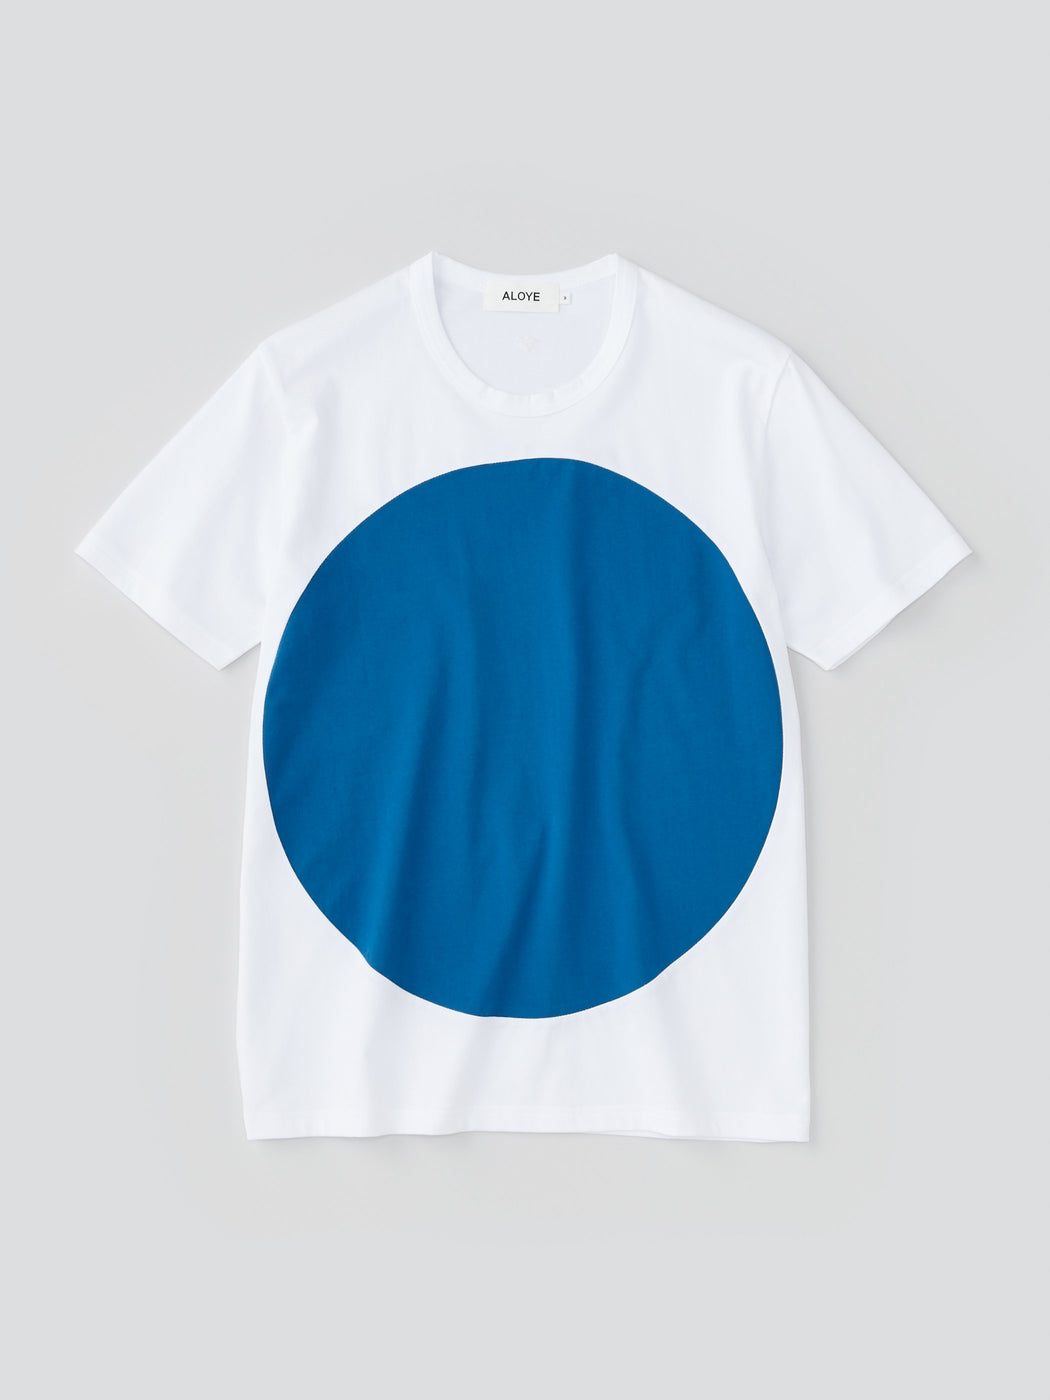 ALOYE Color Blocks Men's Short Sleeve T-shirt White-Blue Circle